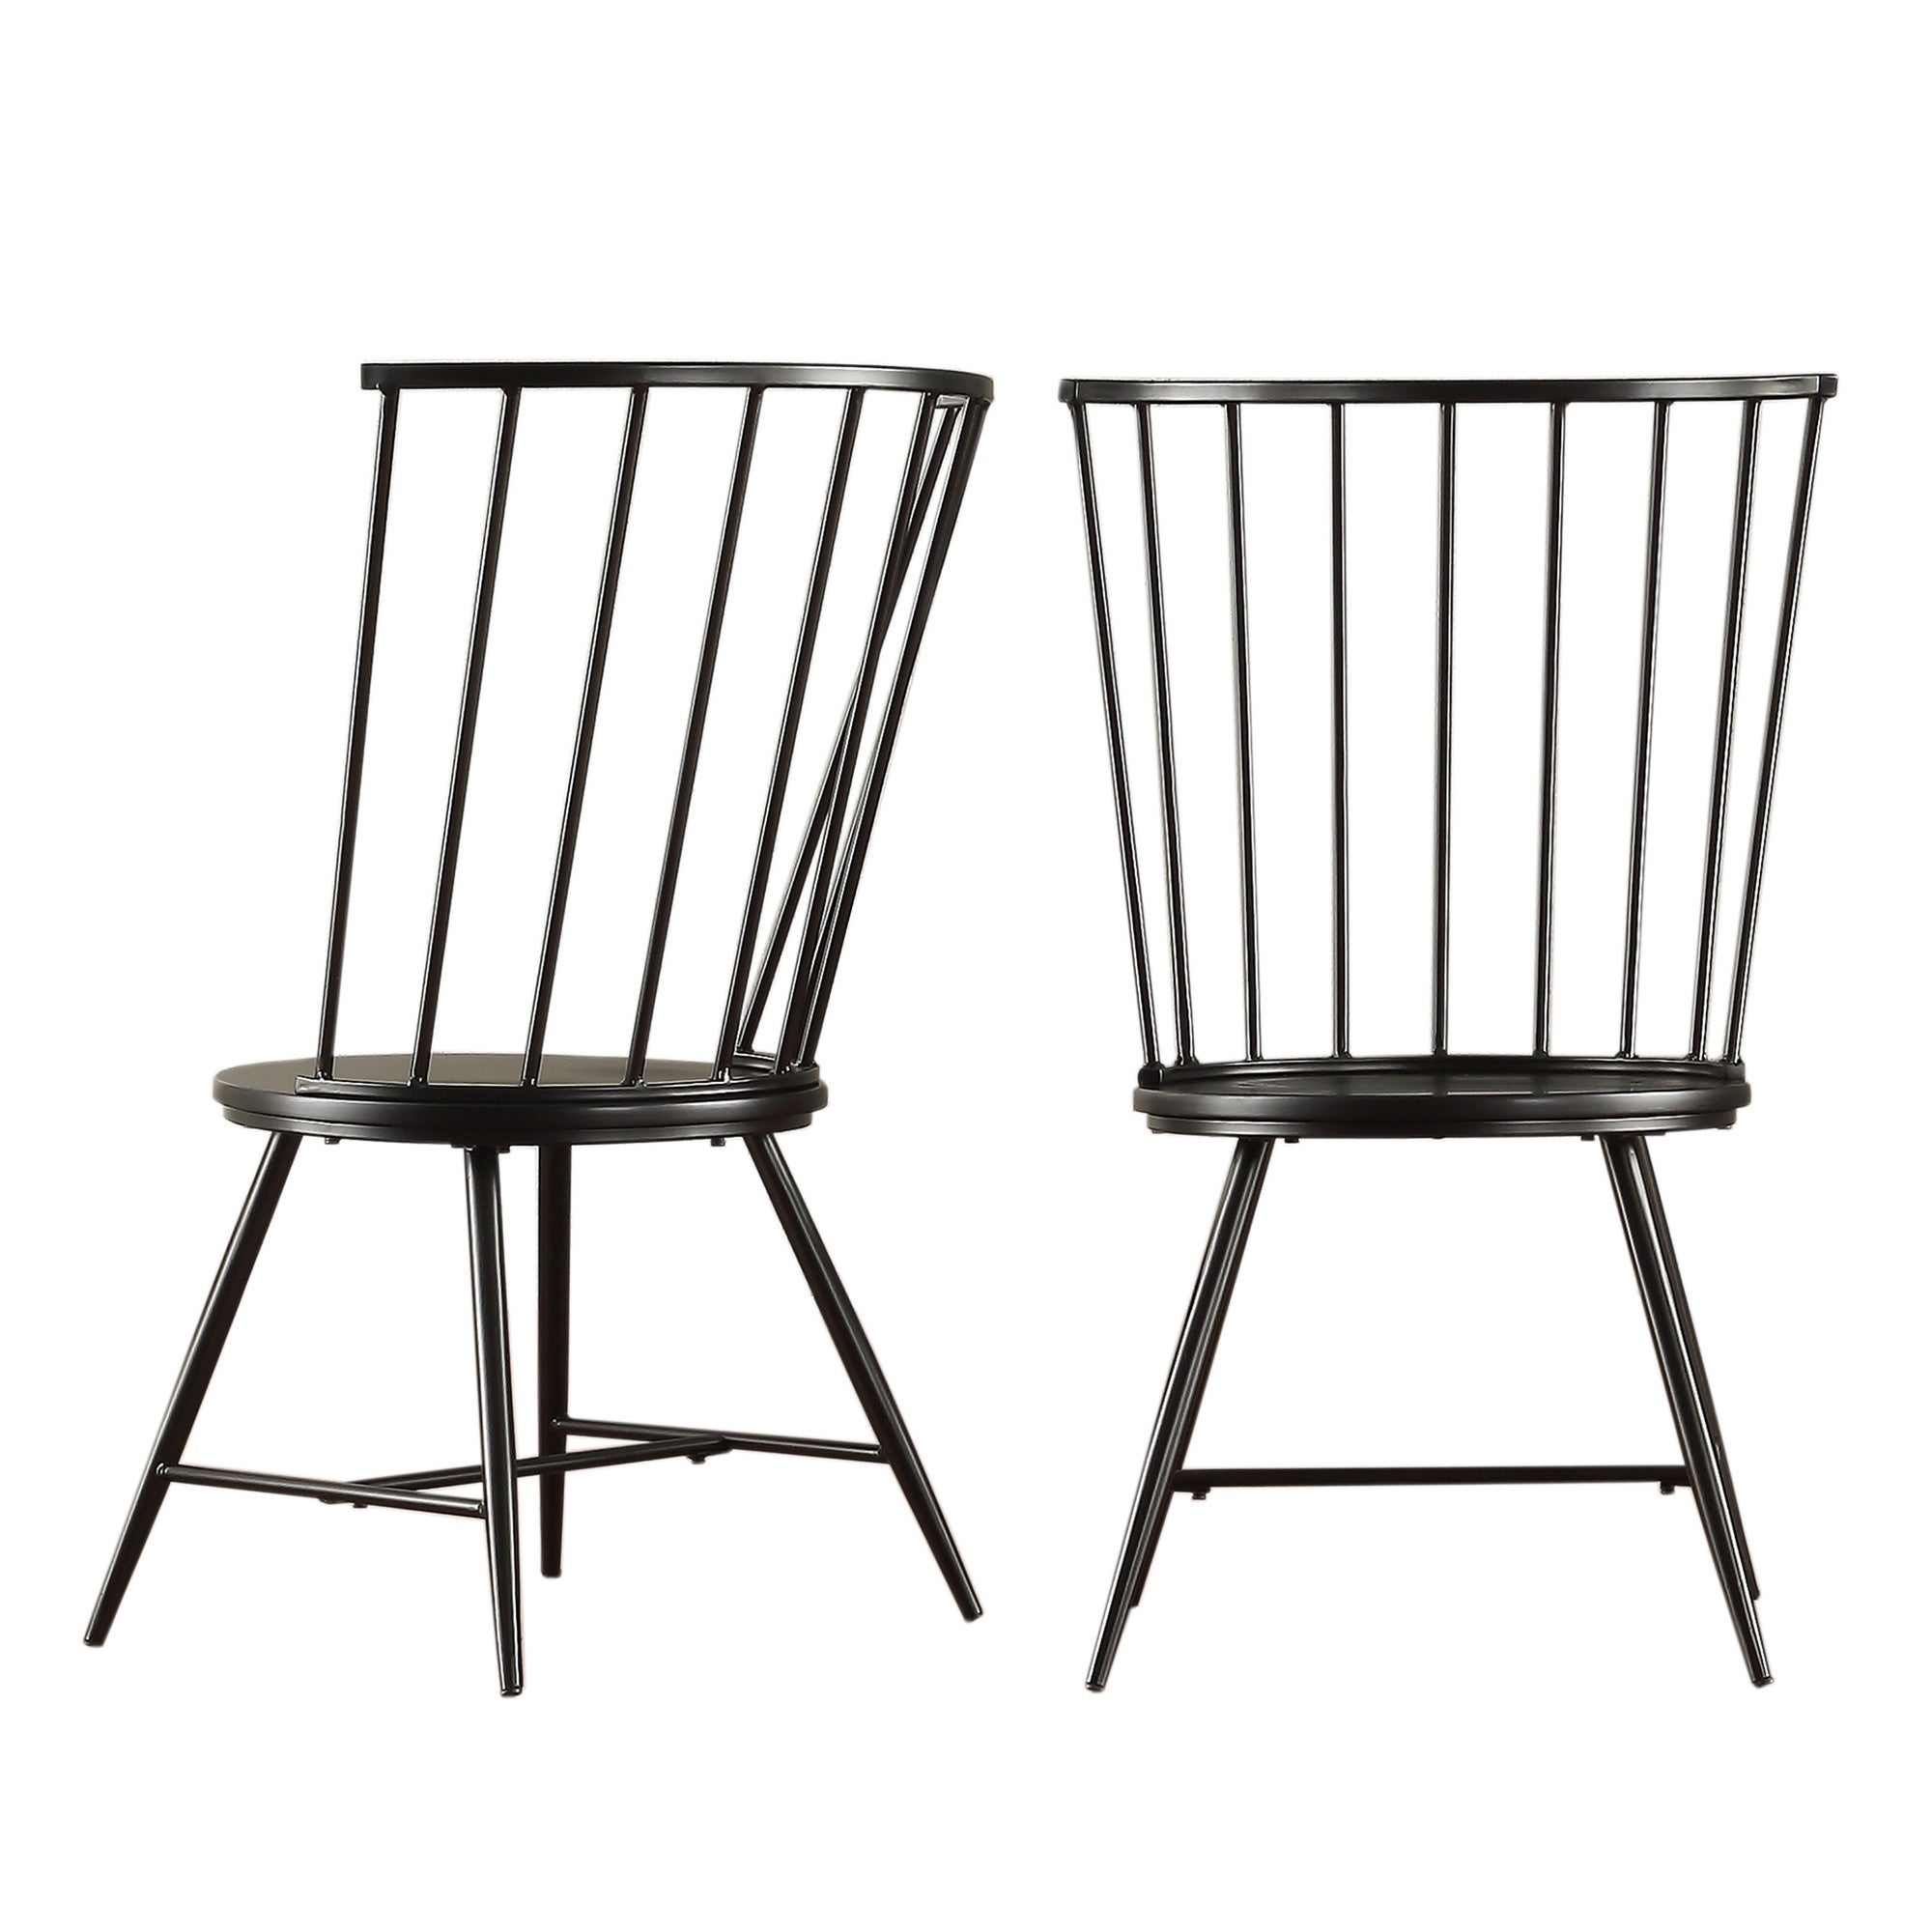 Truman High Back Windsor Classic Dining Chair (Set of 2) iNSPIRE Q Modern -  Free Shipping Today - Overstock.com - 16775262